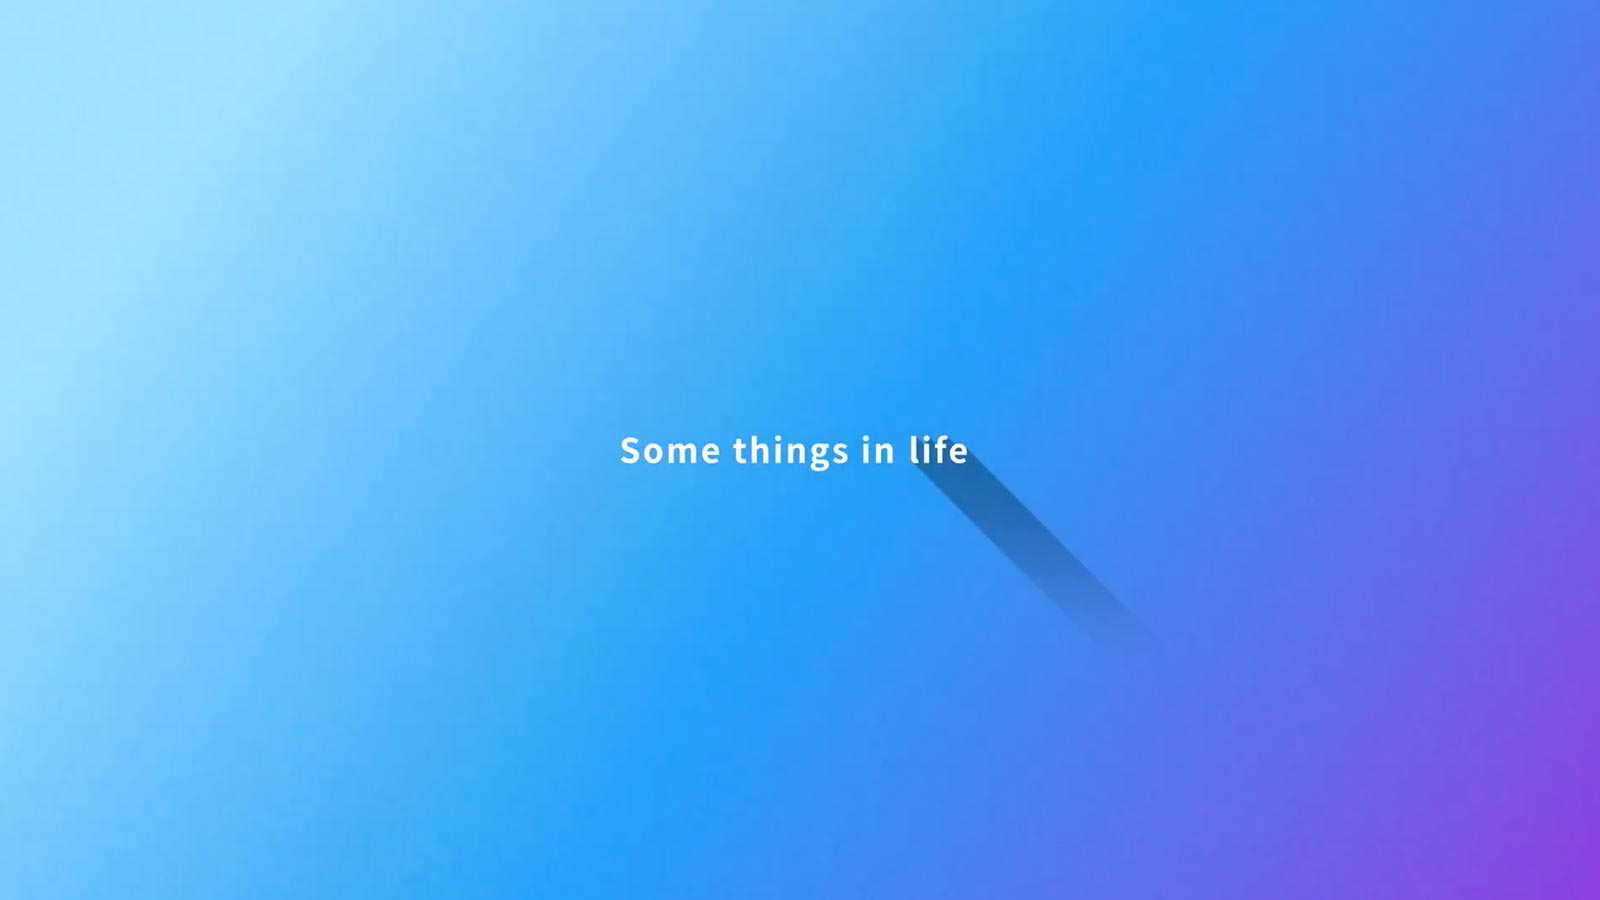 Some things in life